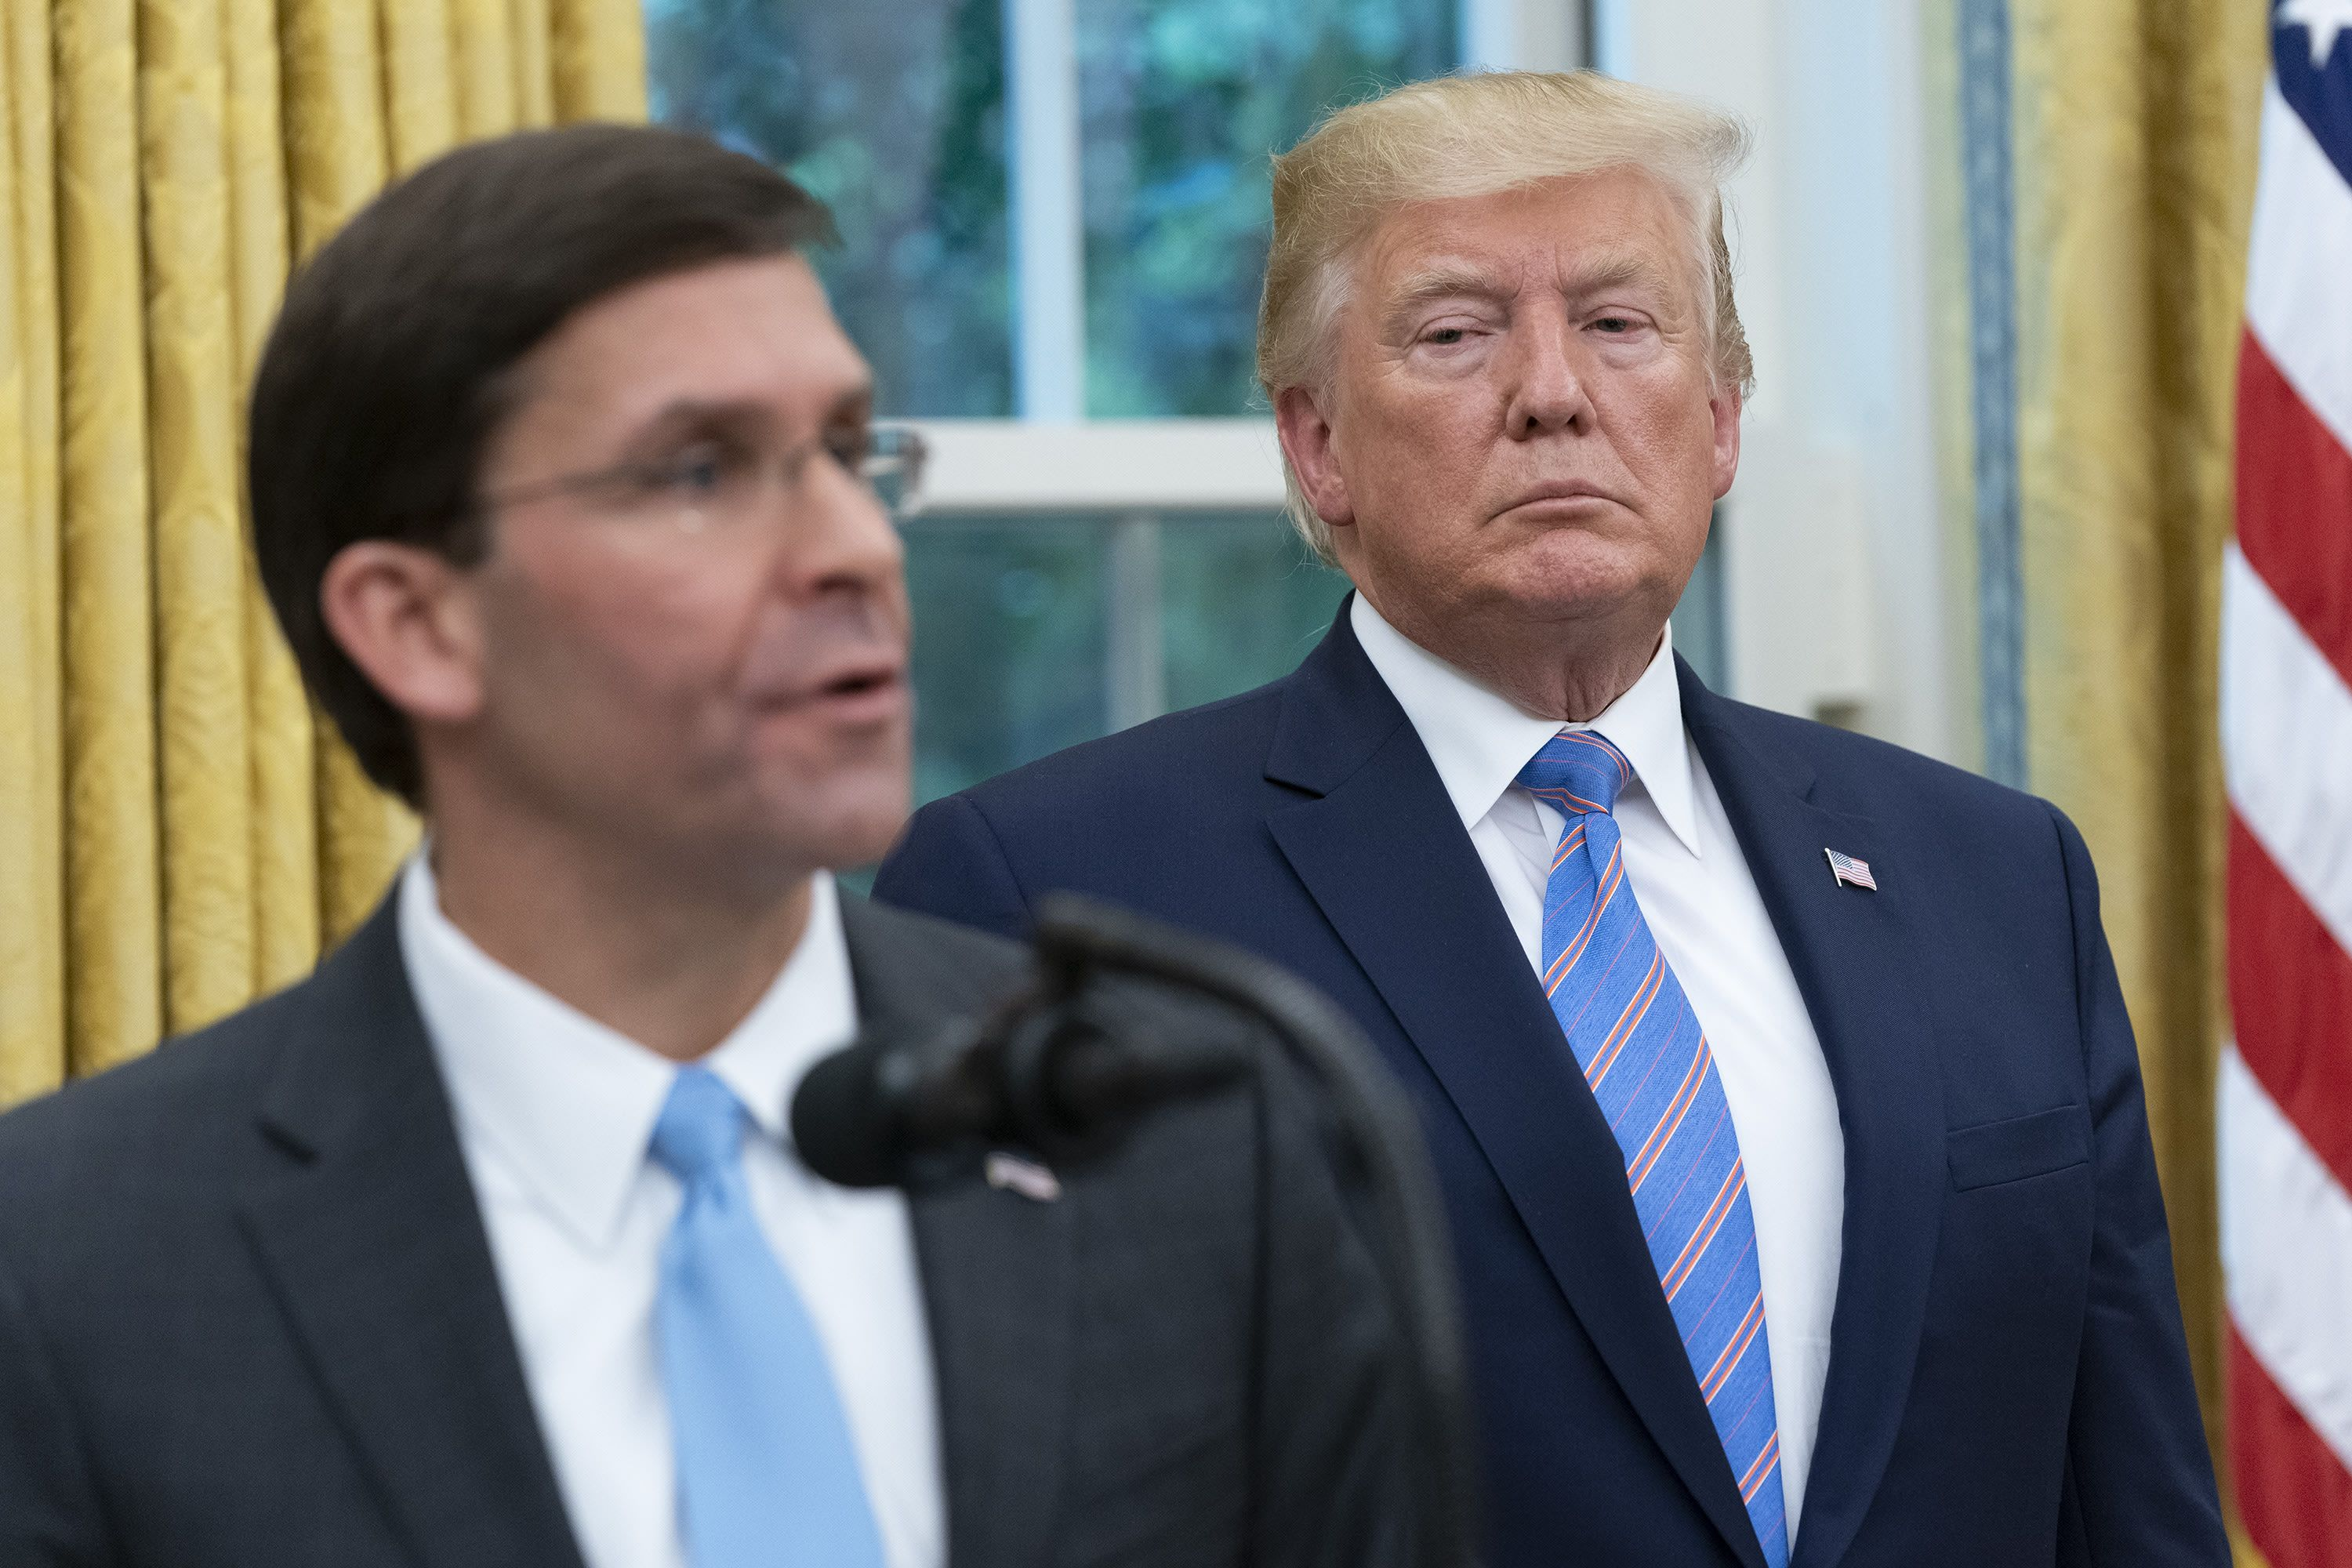 Trump Was Talked Out Of Firing Defense Secretary Esper Over Disagreement On Protest Response Wsj Says In 2020 American Cities Military Equipment Military Personnel